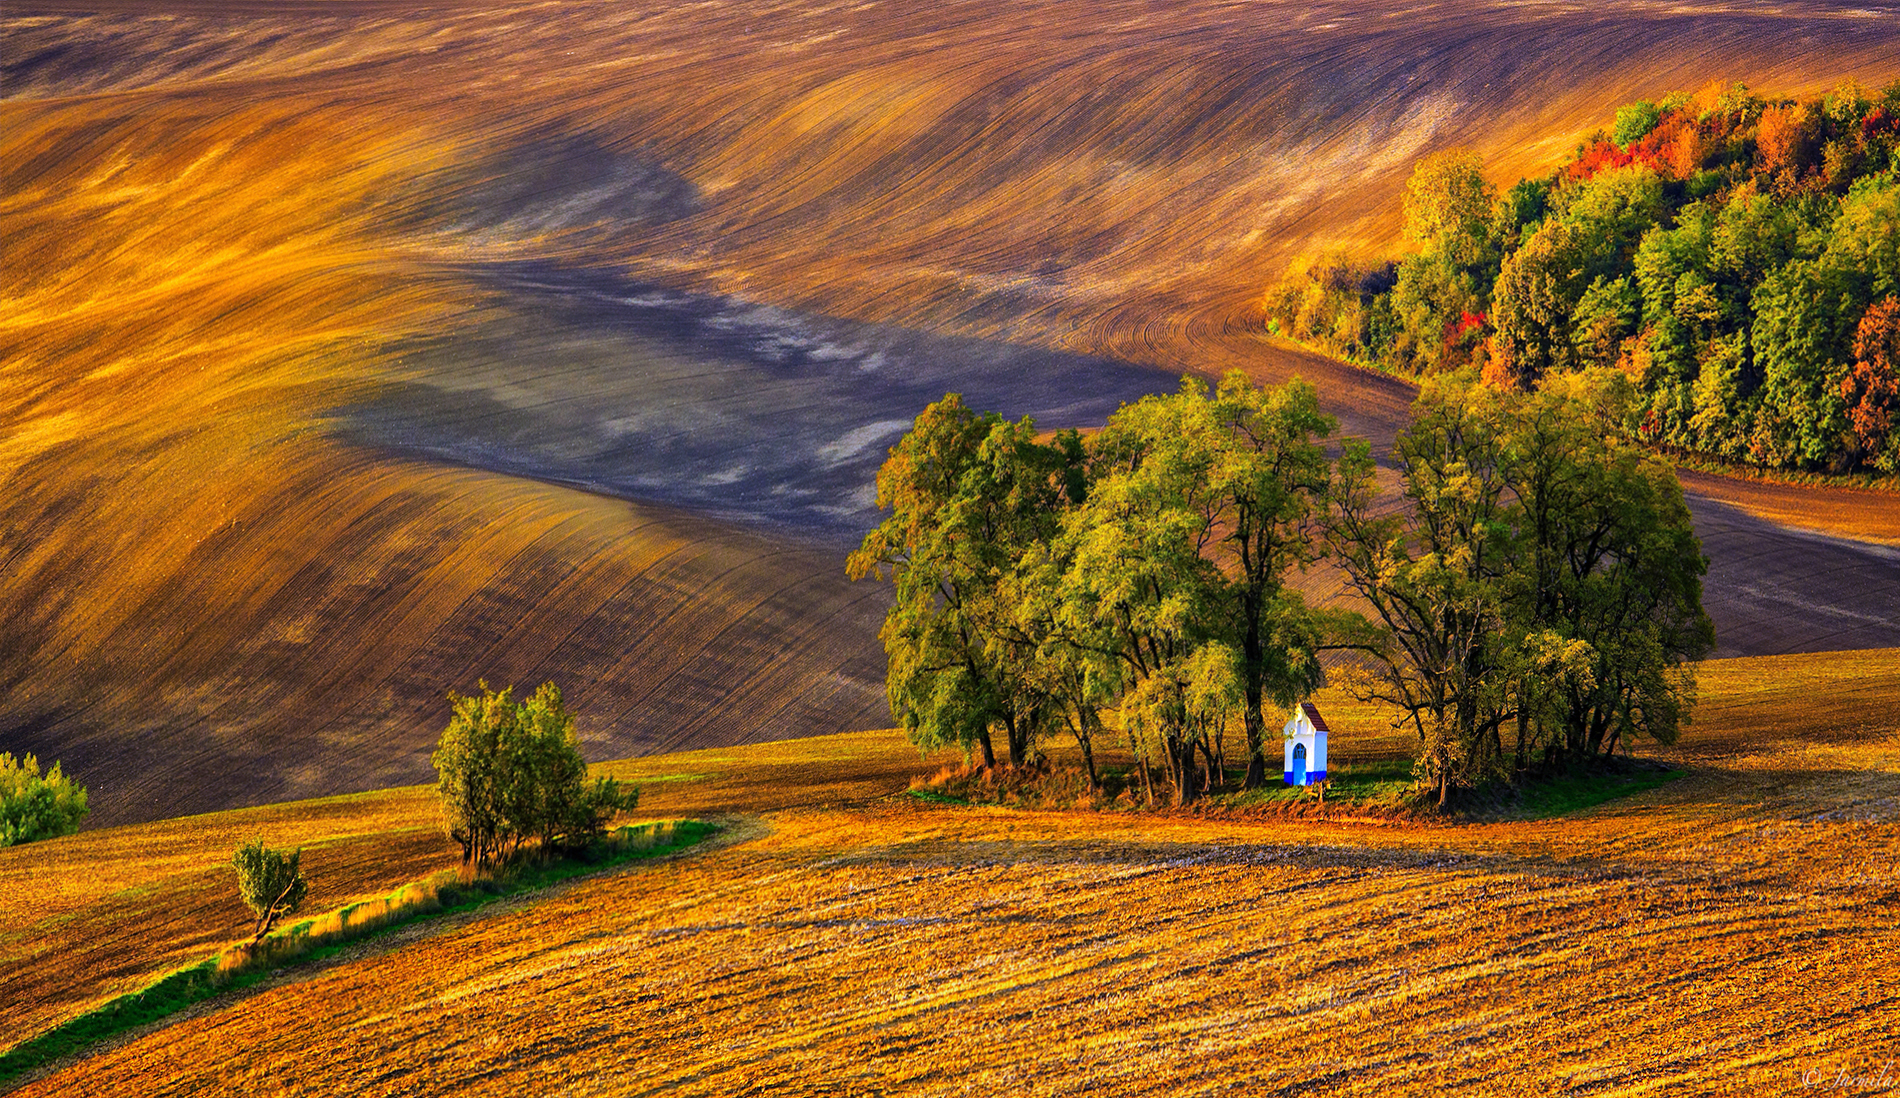 The embrace of the trees at sunset in Moravia ...